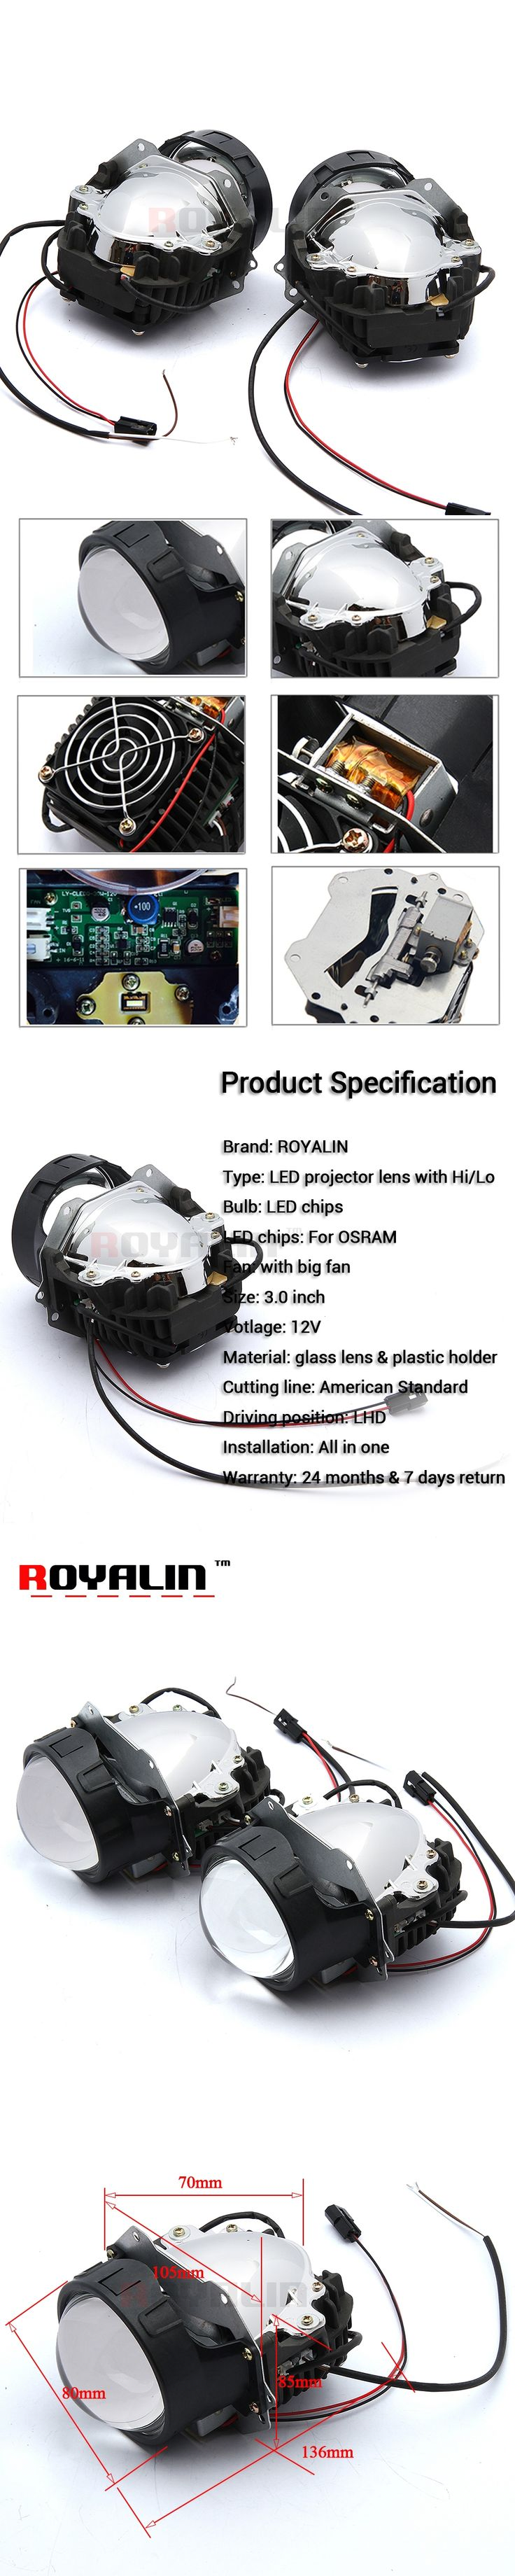 ROYALIN Car Styling Bi LED Projector Headlights Lens 3.0 inch LHD RHD High Beam Low Beam All In One for Most Auto Lamps Retrofit